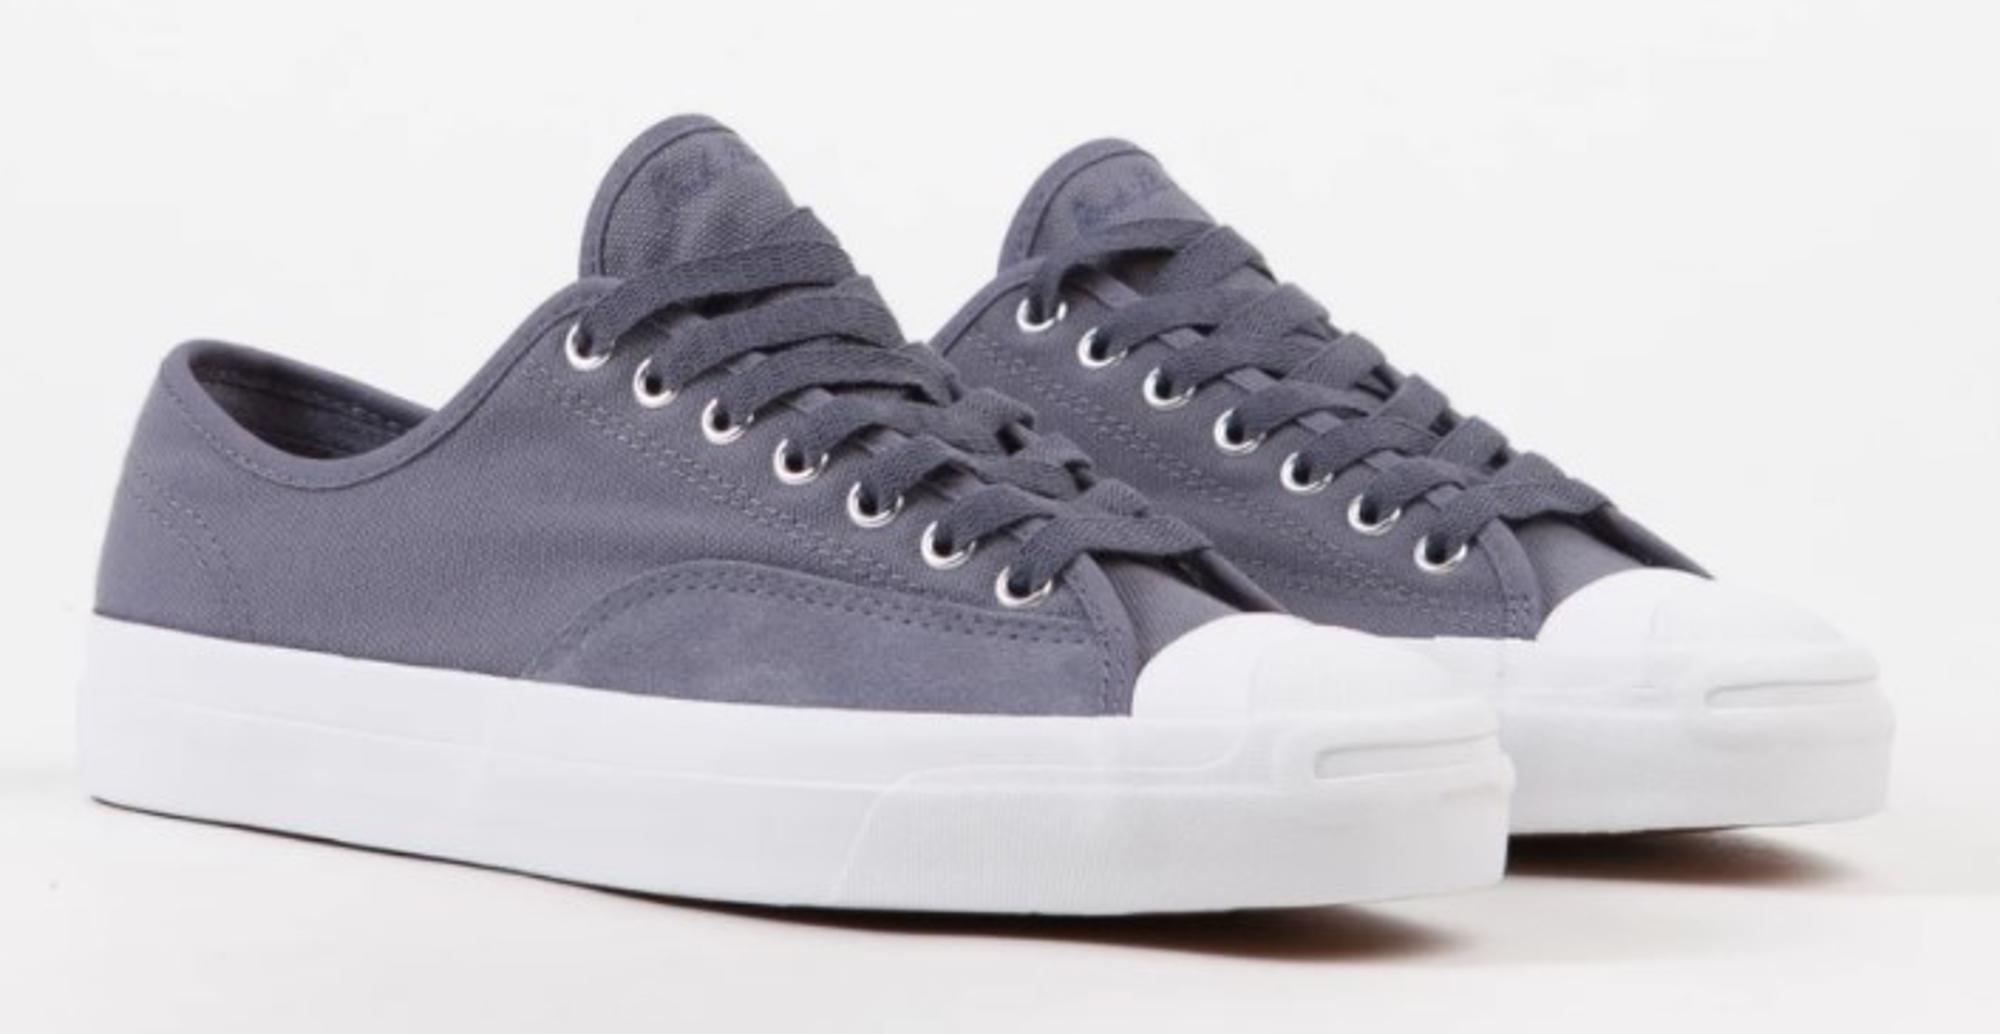 Converse Jack Purcell Pro Ox Shoes - Black / Pale Grey